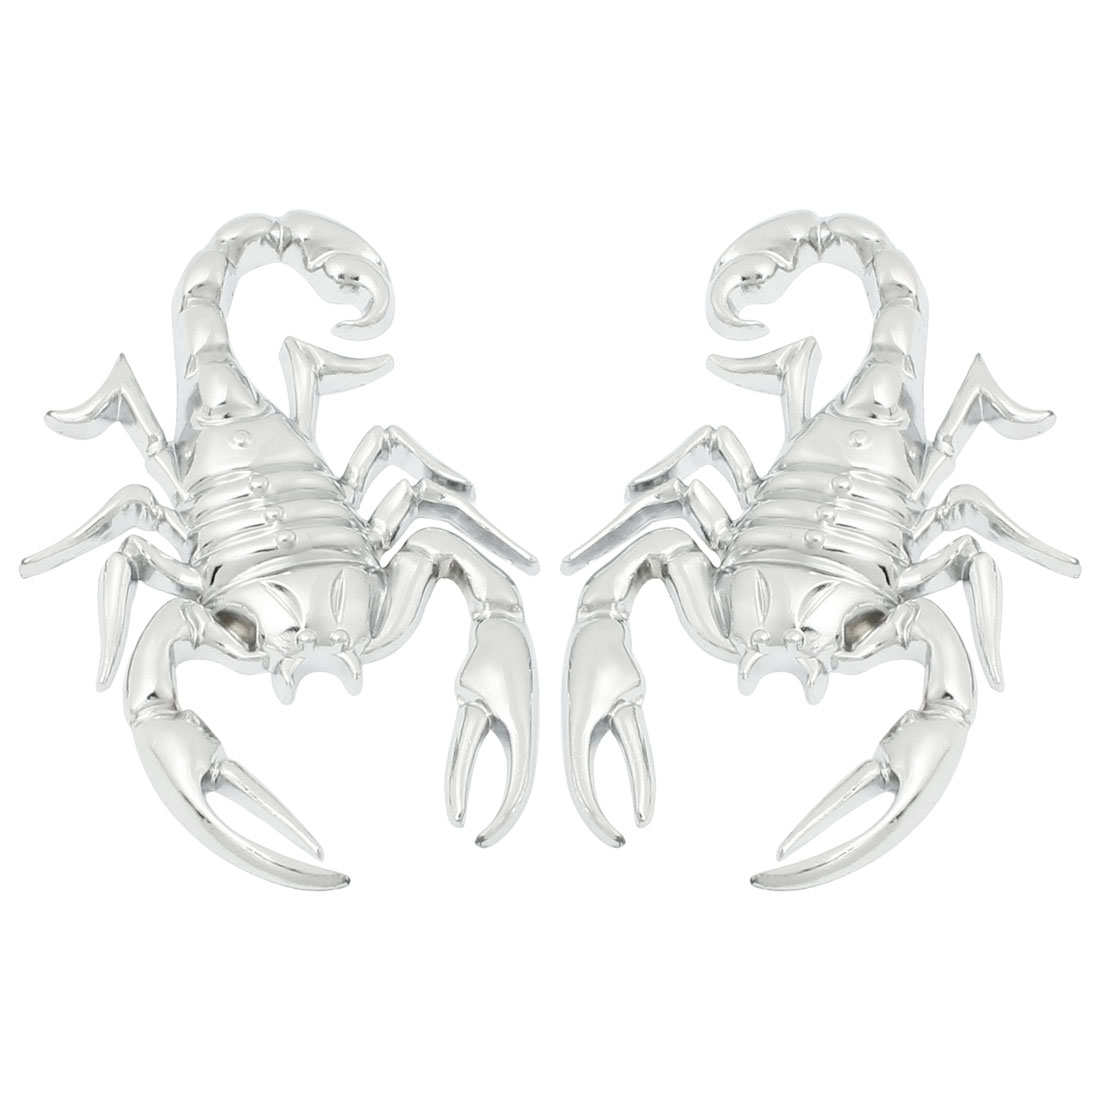 2 Pcs Car Exterior Decorative Metal Scorpion Shape Badge Sticker Silver Tone